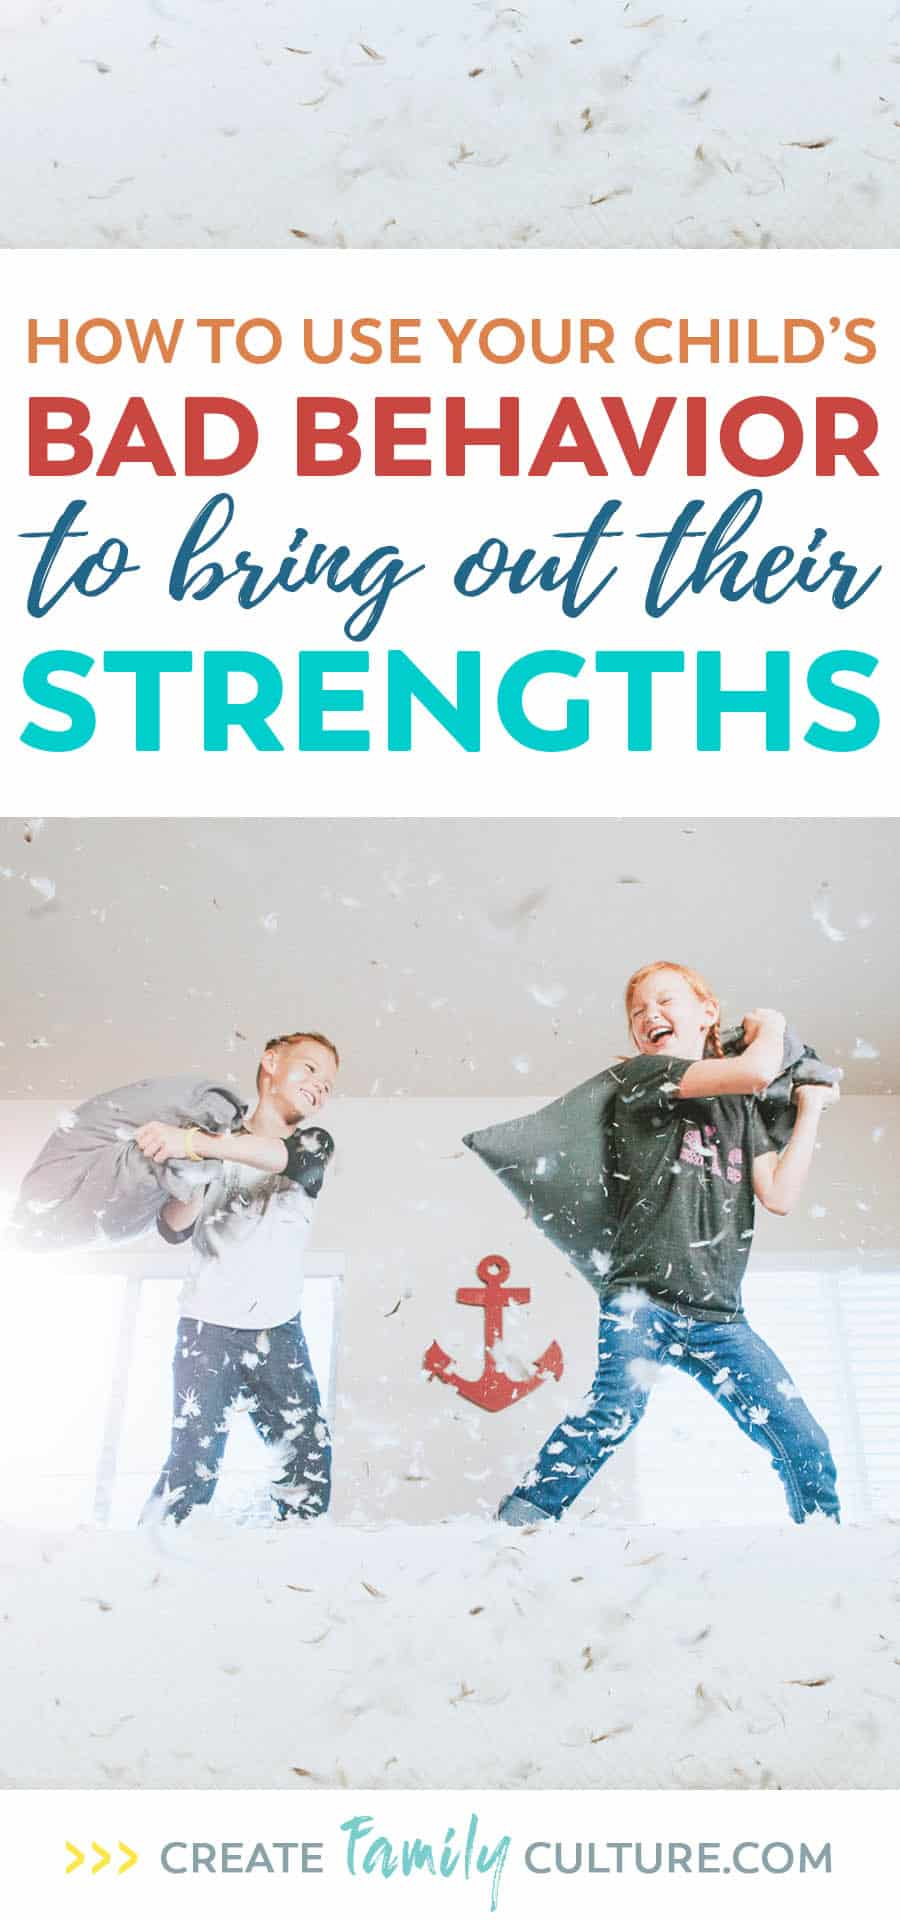 How to Use Your Kids' Bad Behavior to Bring Out Their Strengths | Parenting Tips on Discipline | Intentional Parenting #parentingtips #discipline